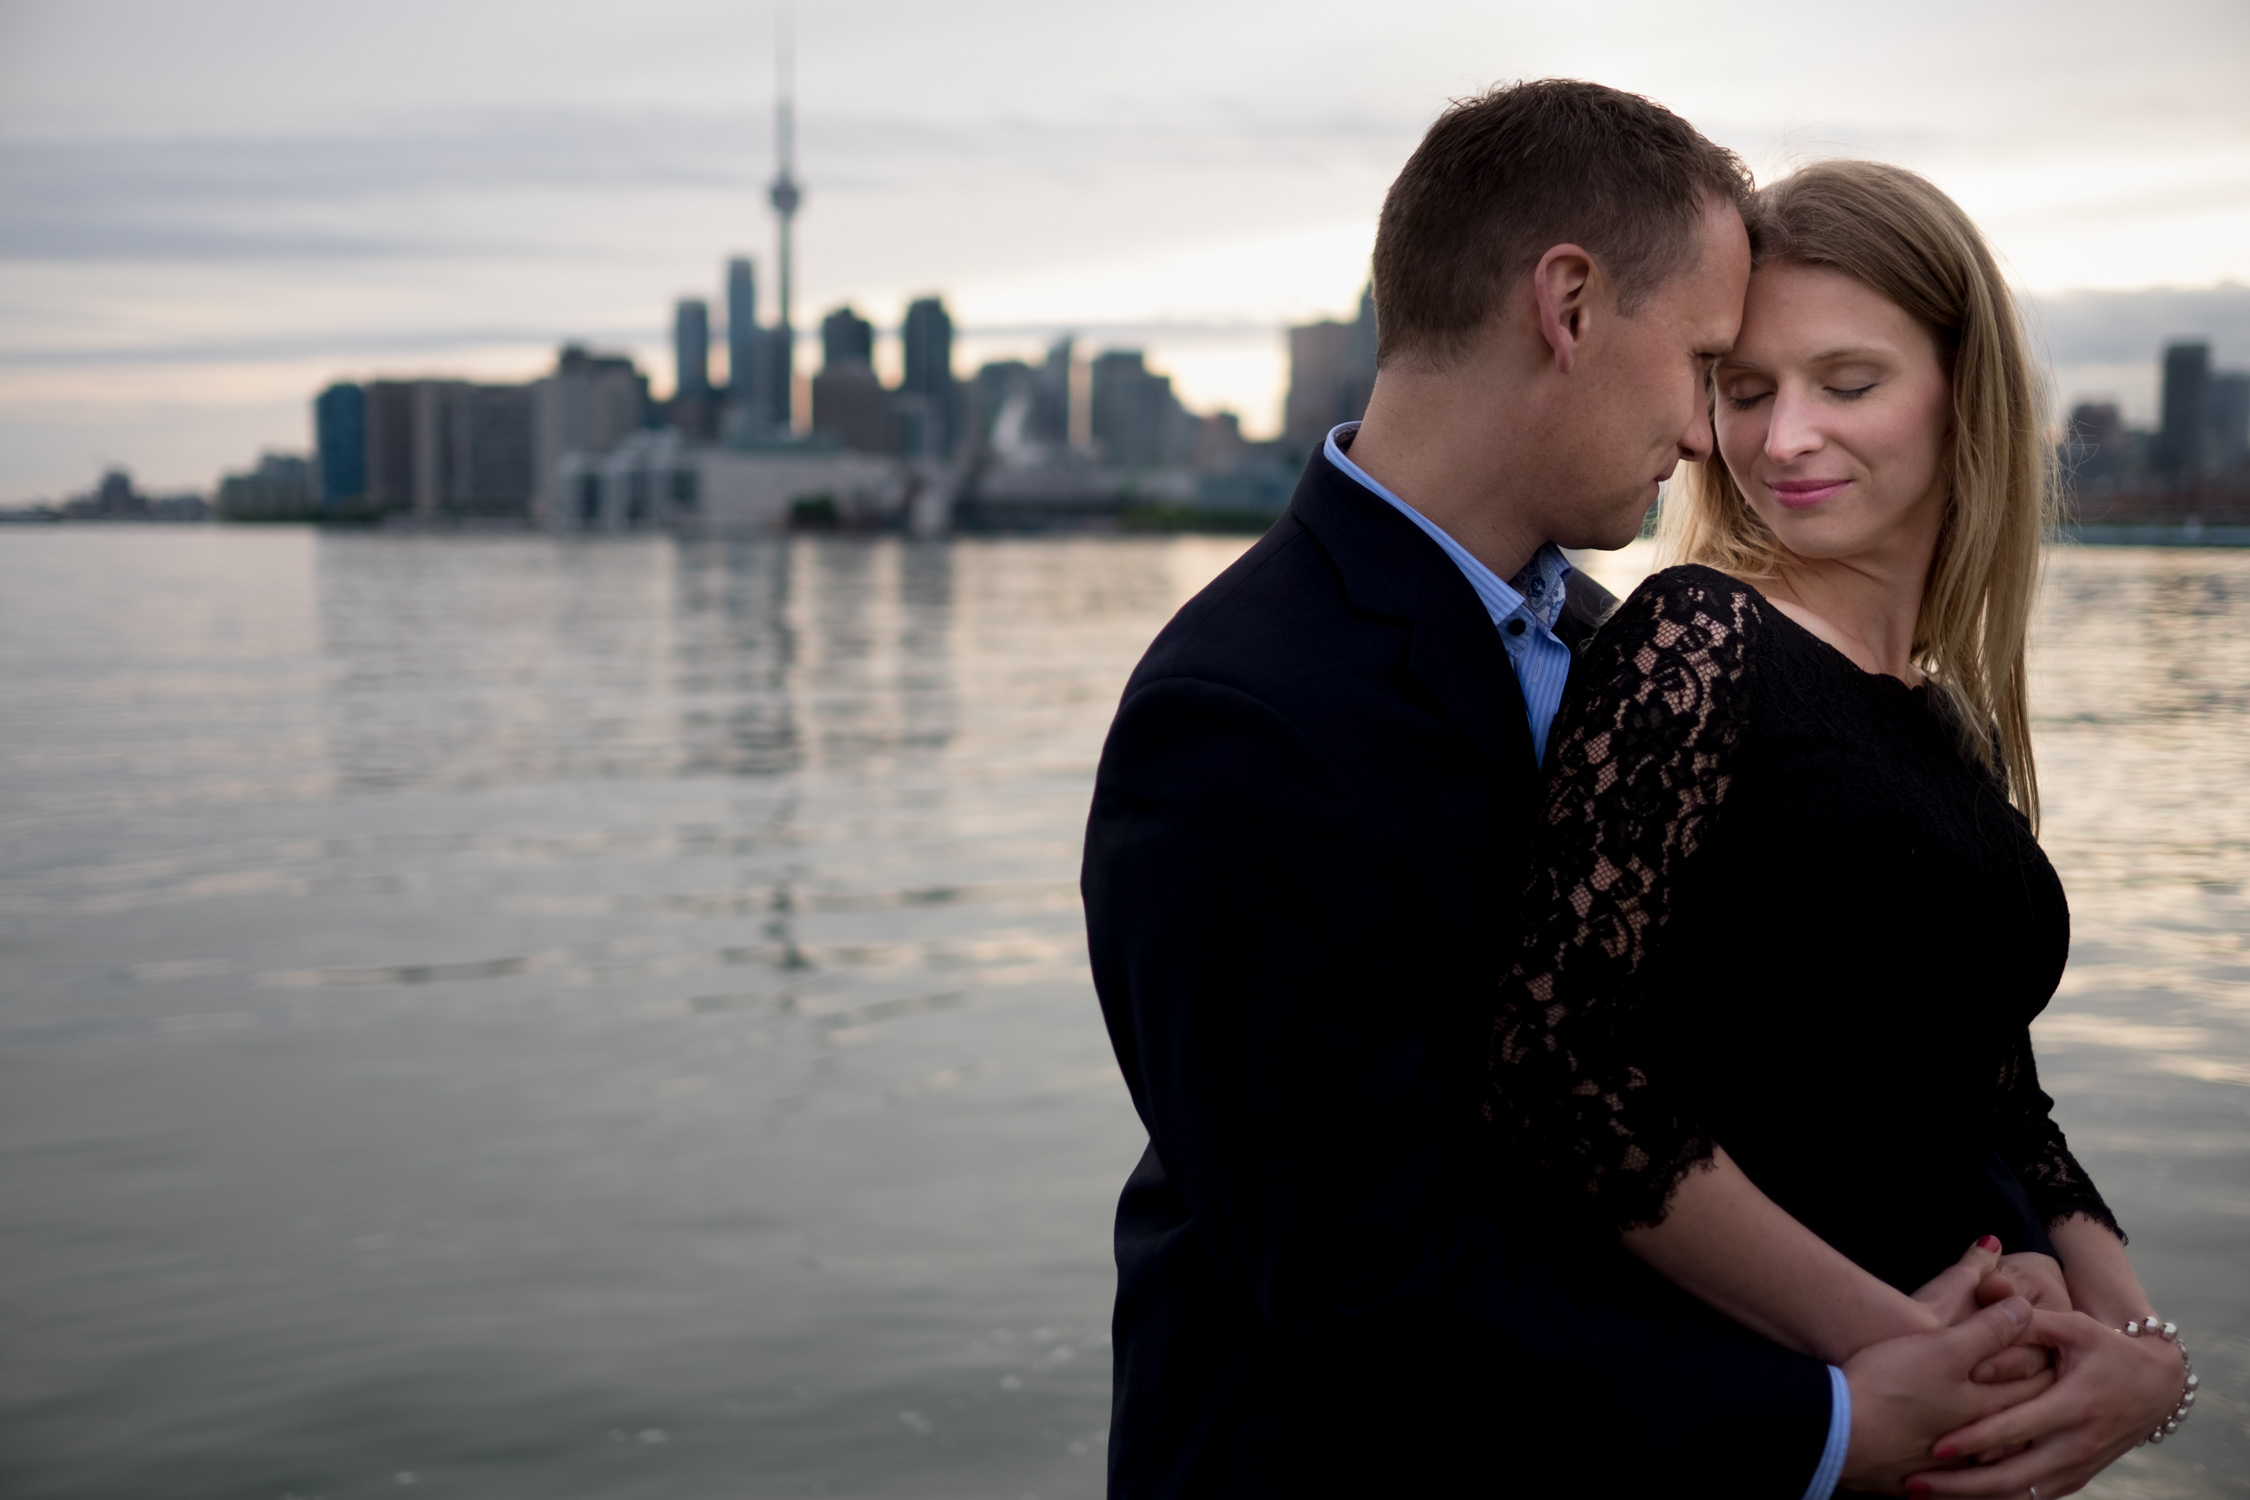 toronto-waterfront-engagement-picture-001.jpg